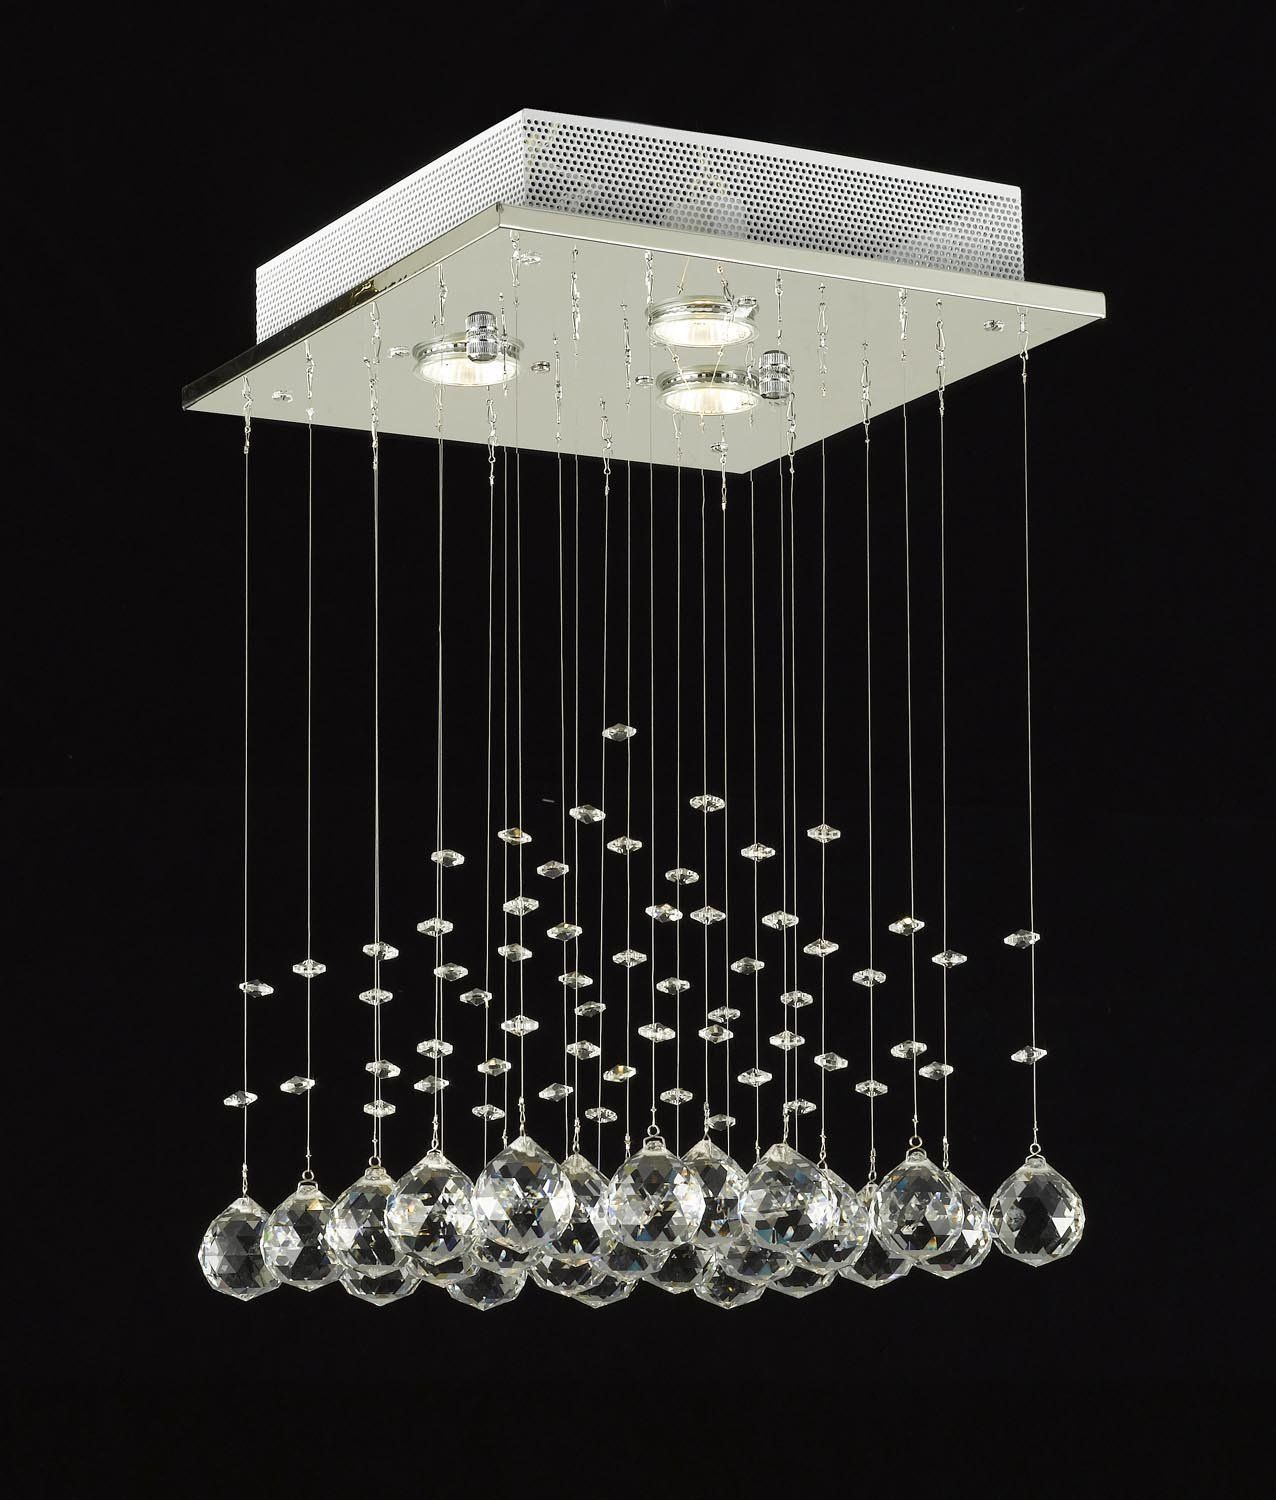 Modern Chandelier Rain Drop Lighting Crystal Ball Fixture Pendant Ceiling Lamp H18 X W12 3